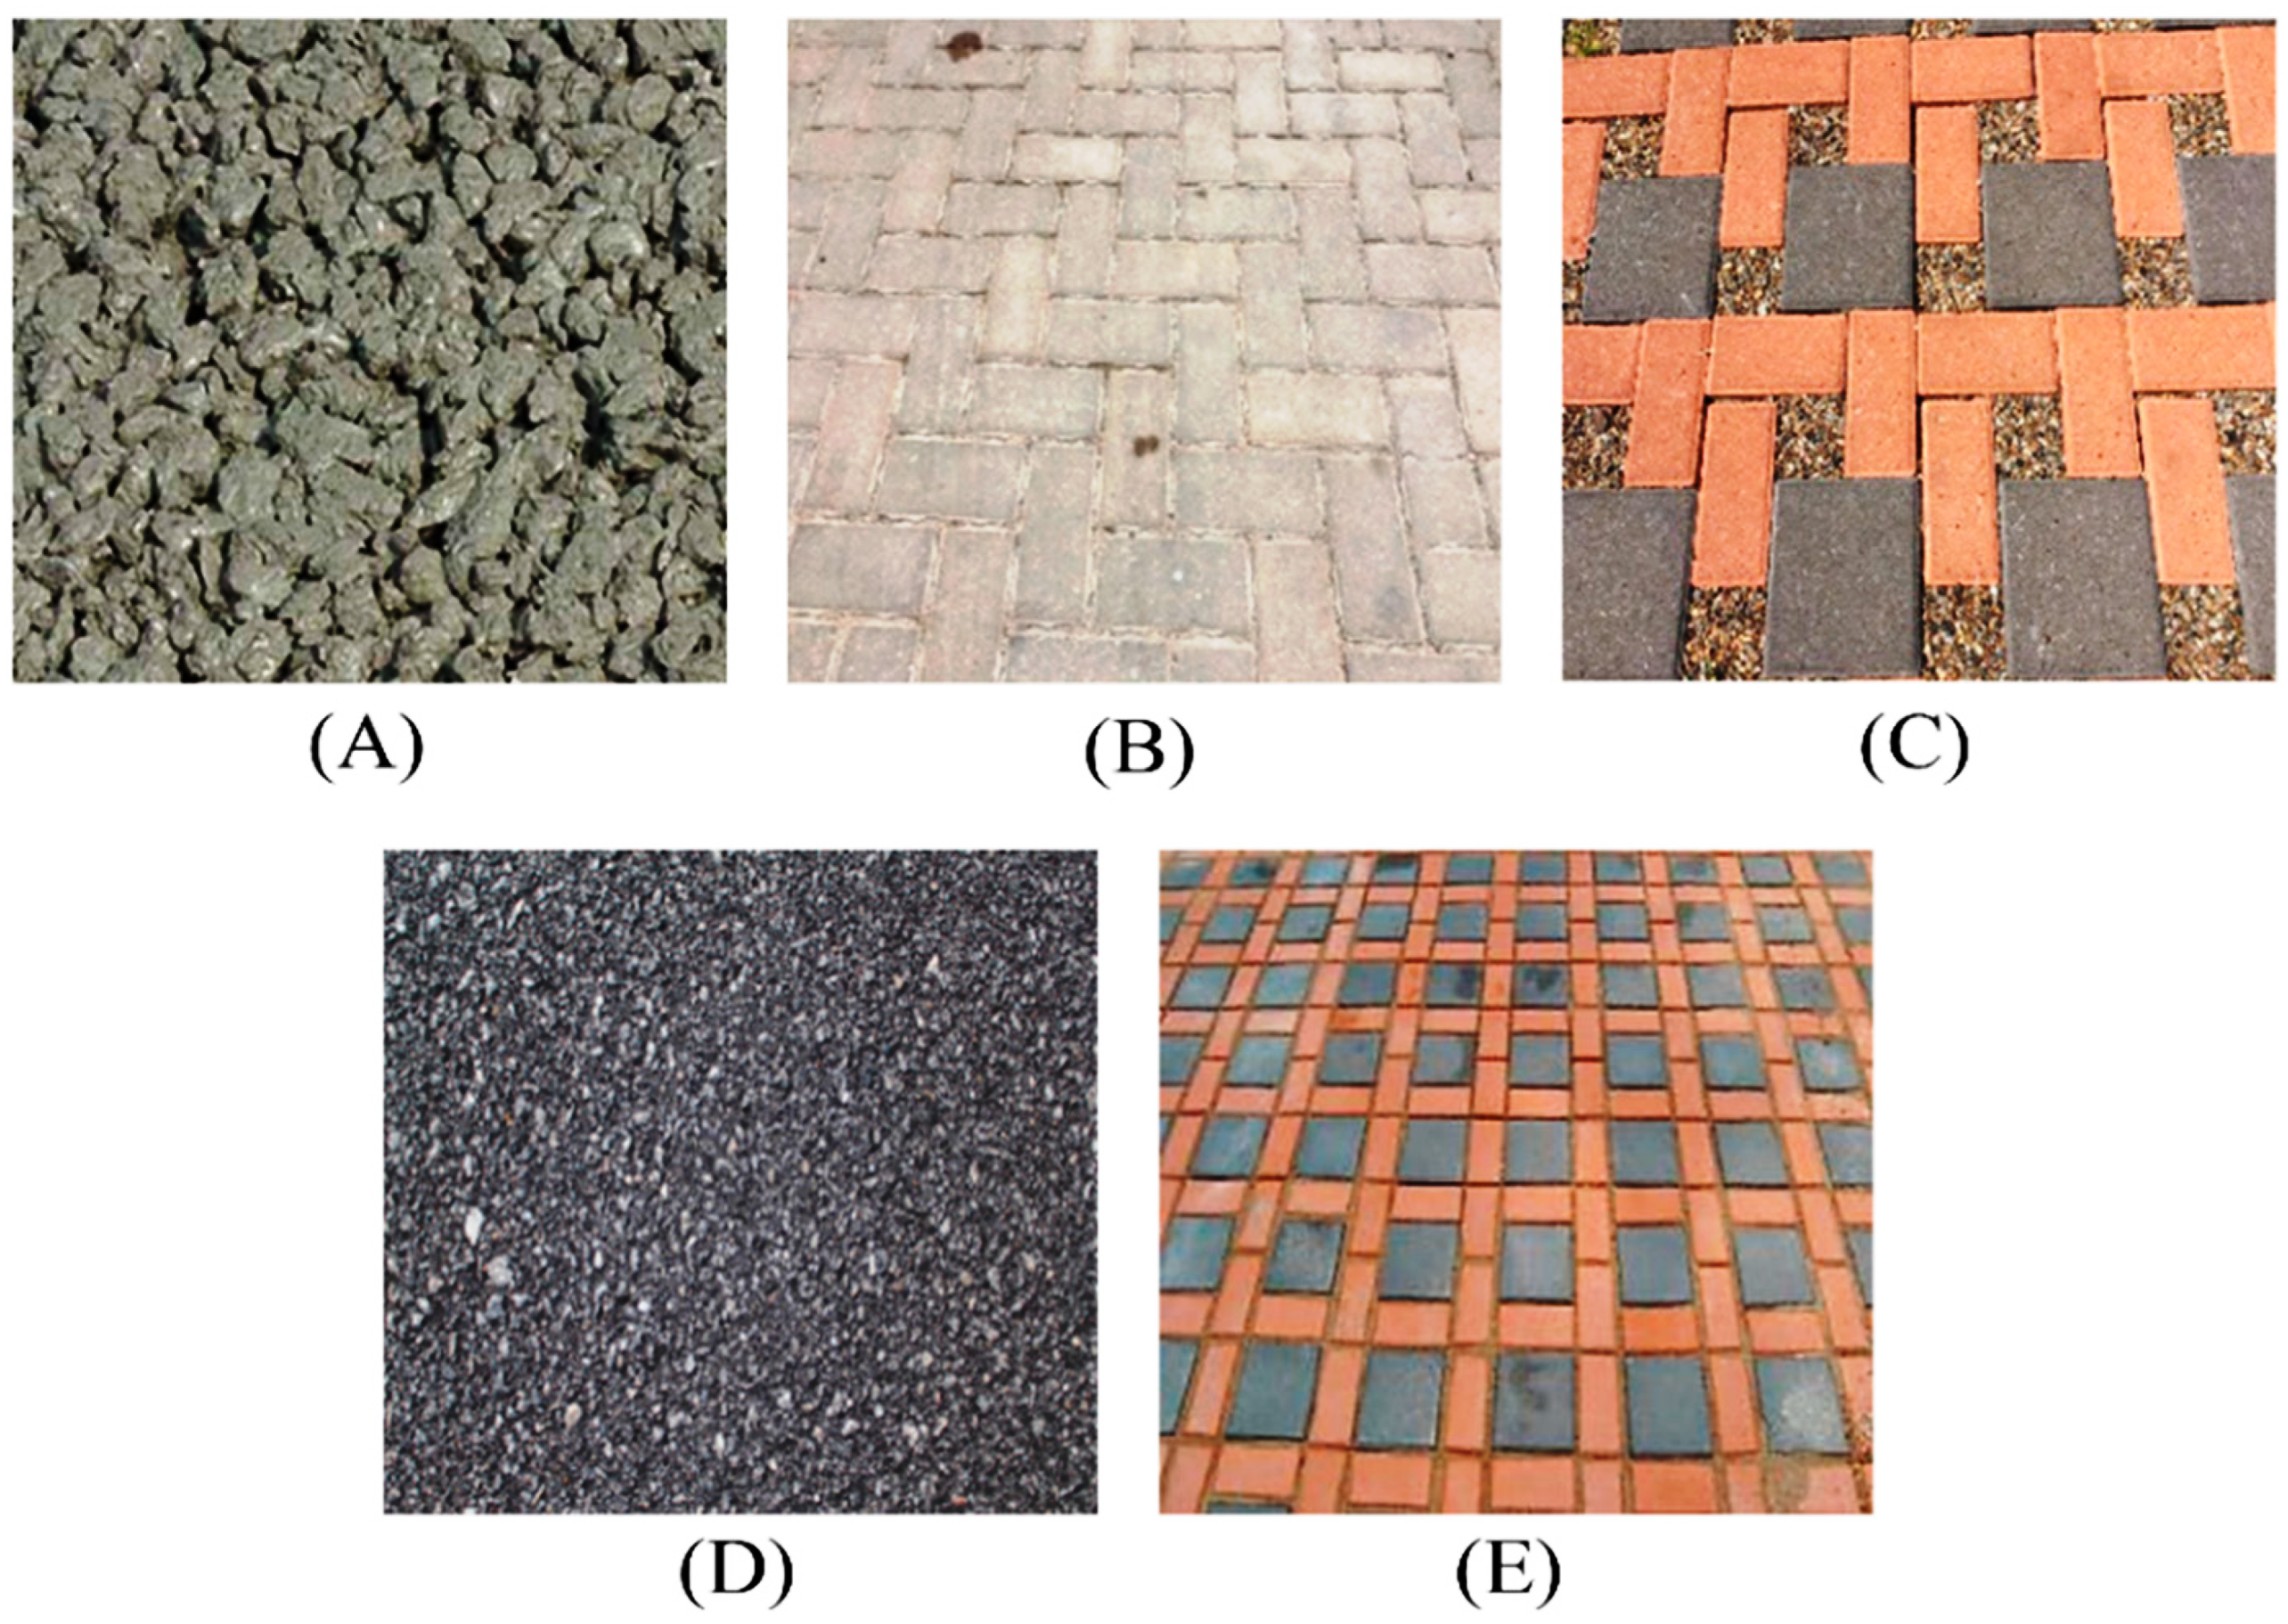 Water Free Full Text A Comparison Of Three Types Of Permeable